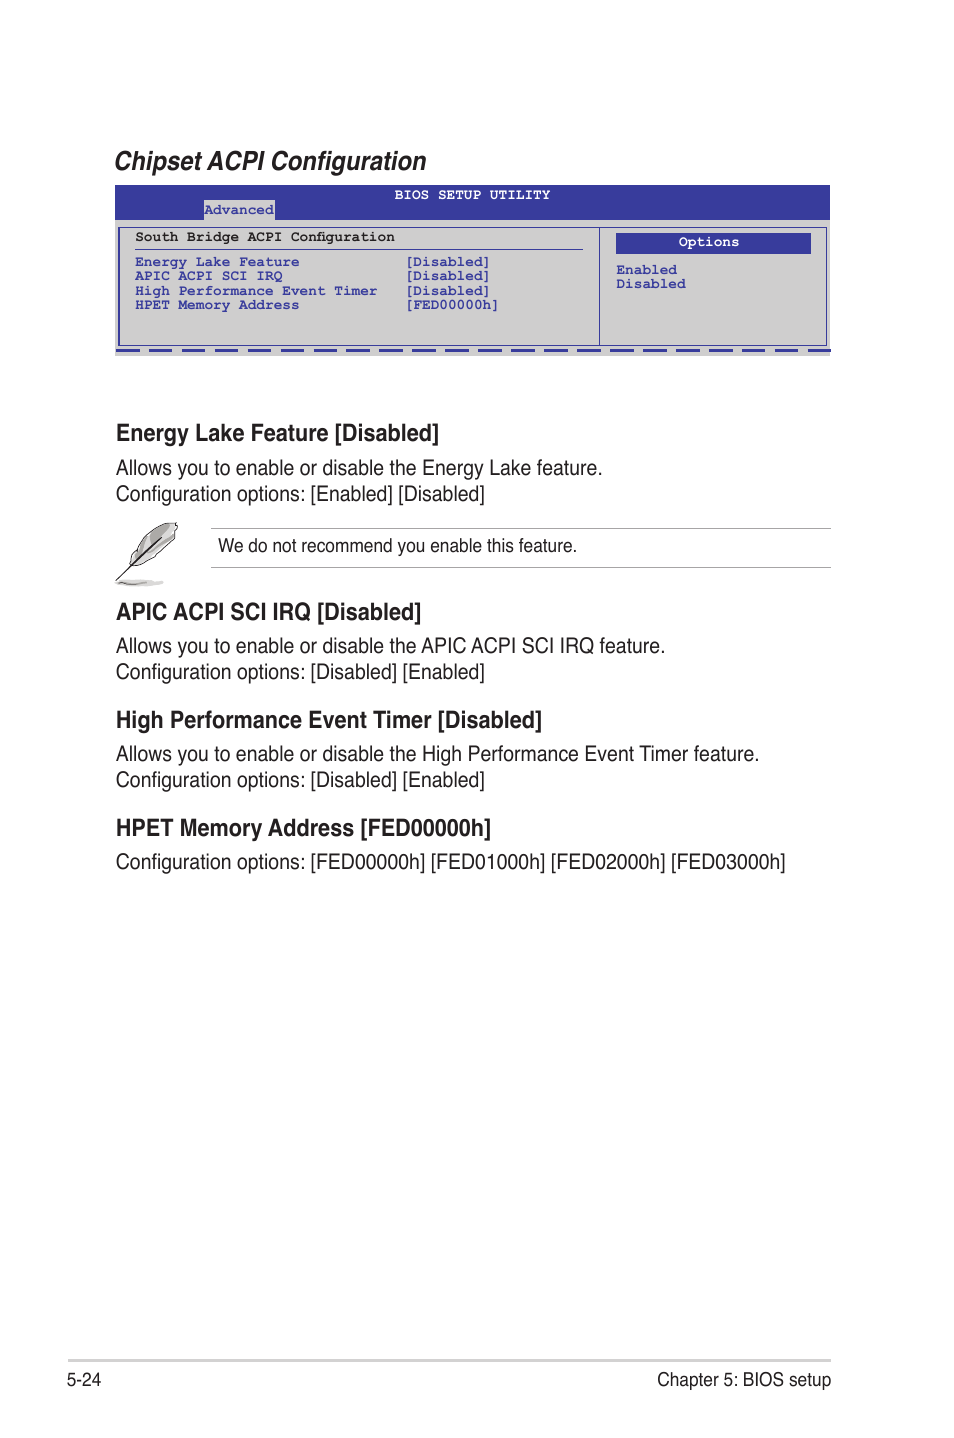 Chipset acpi configuration, Energy lake feature [disabled